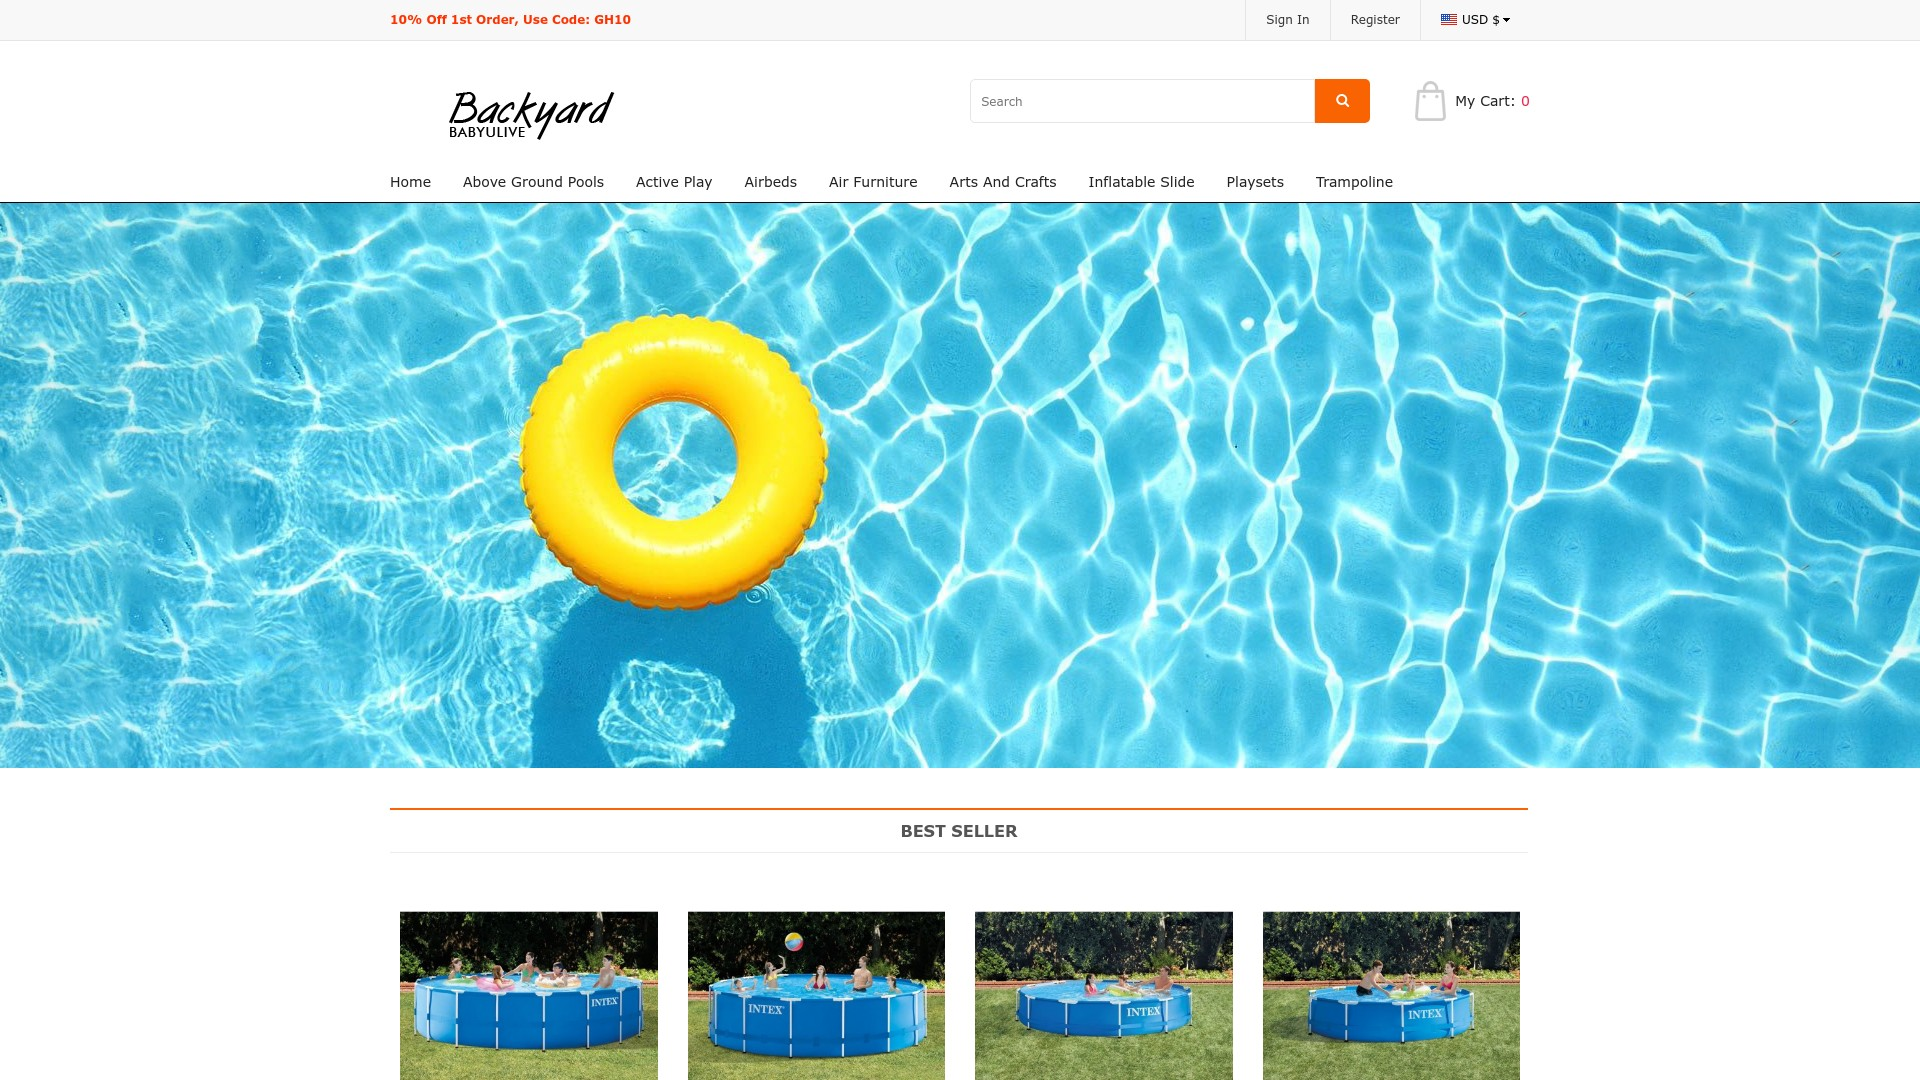 Is Backyard Babyulive a Scam? See the Review of the Online Kids Store